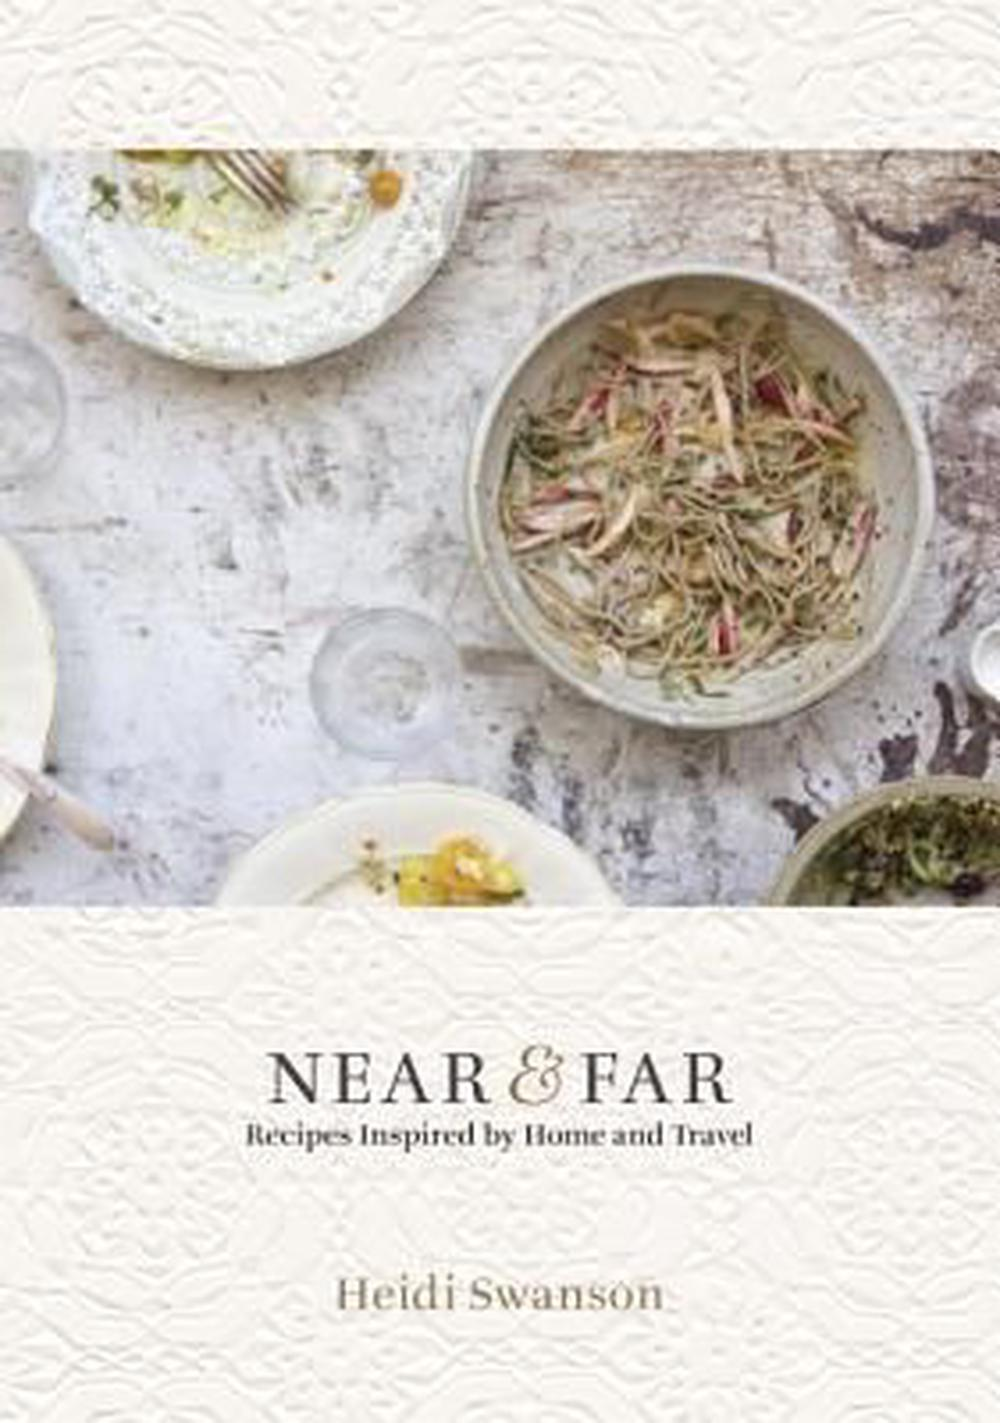 Near & Far: Recipes Inspired by Home & Travel